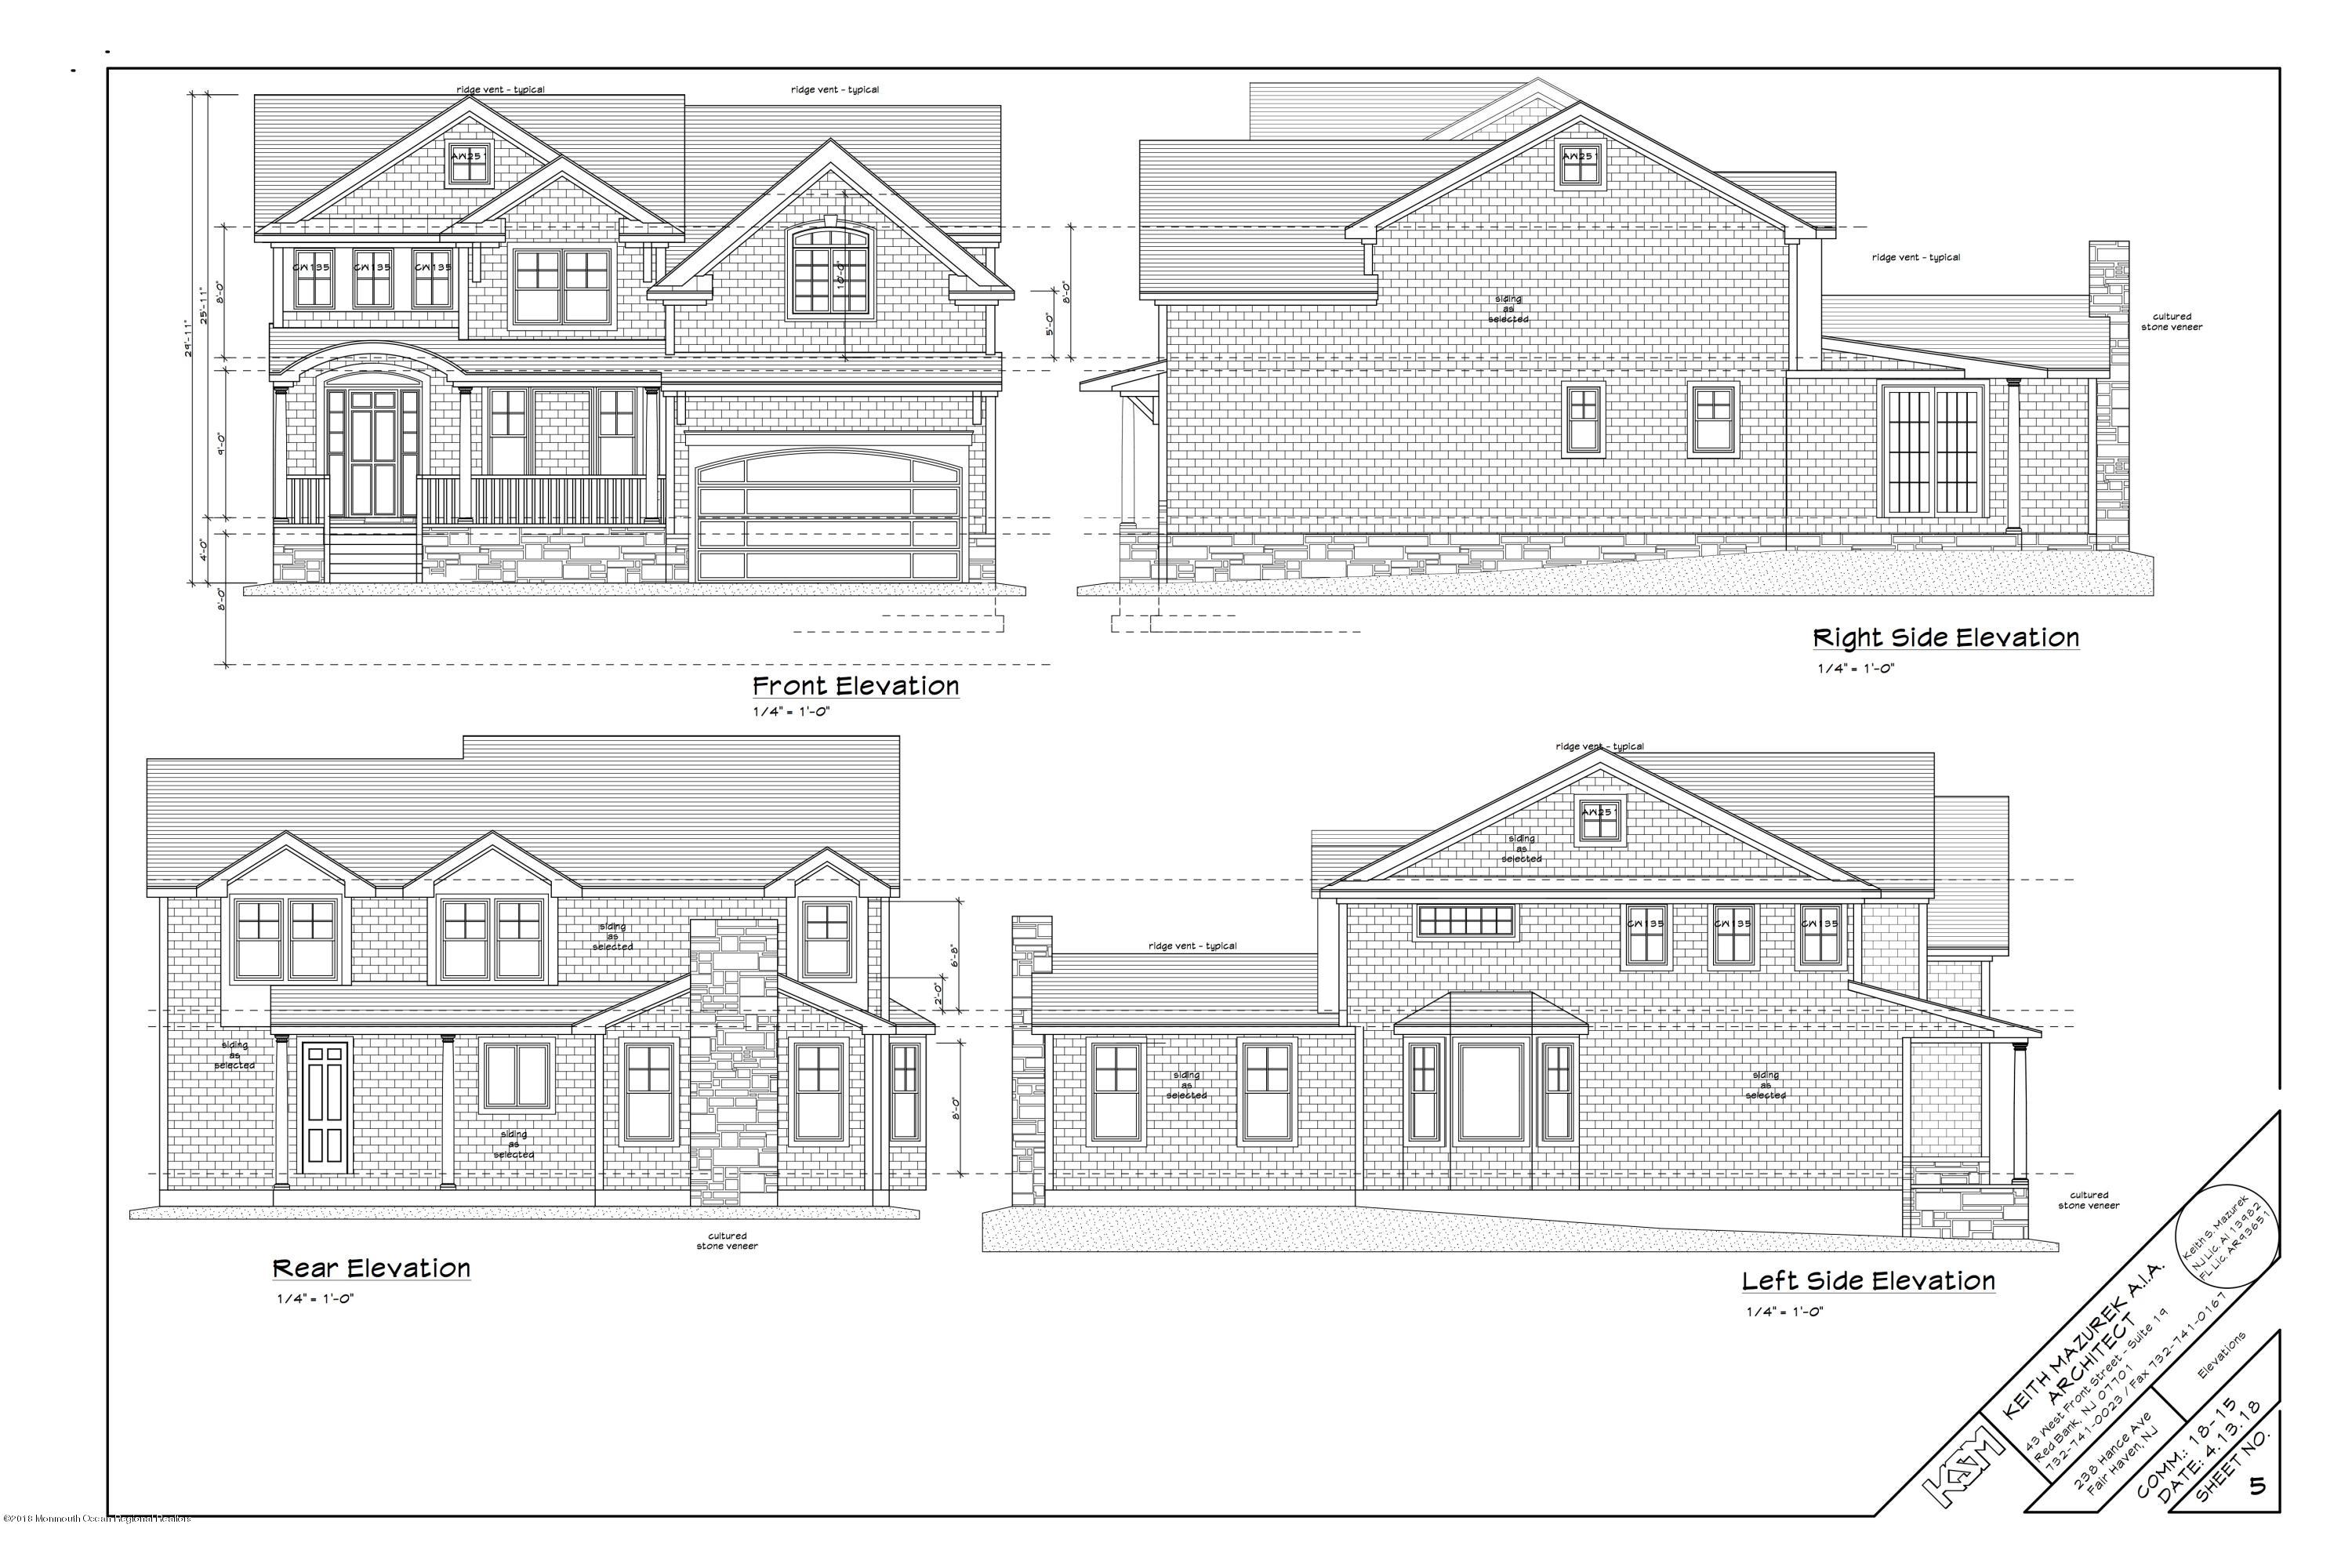 05 18-15 JB 238 Hance FH _ elevations